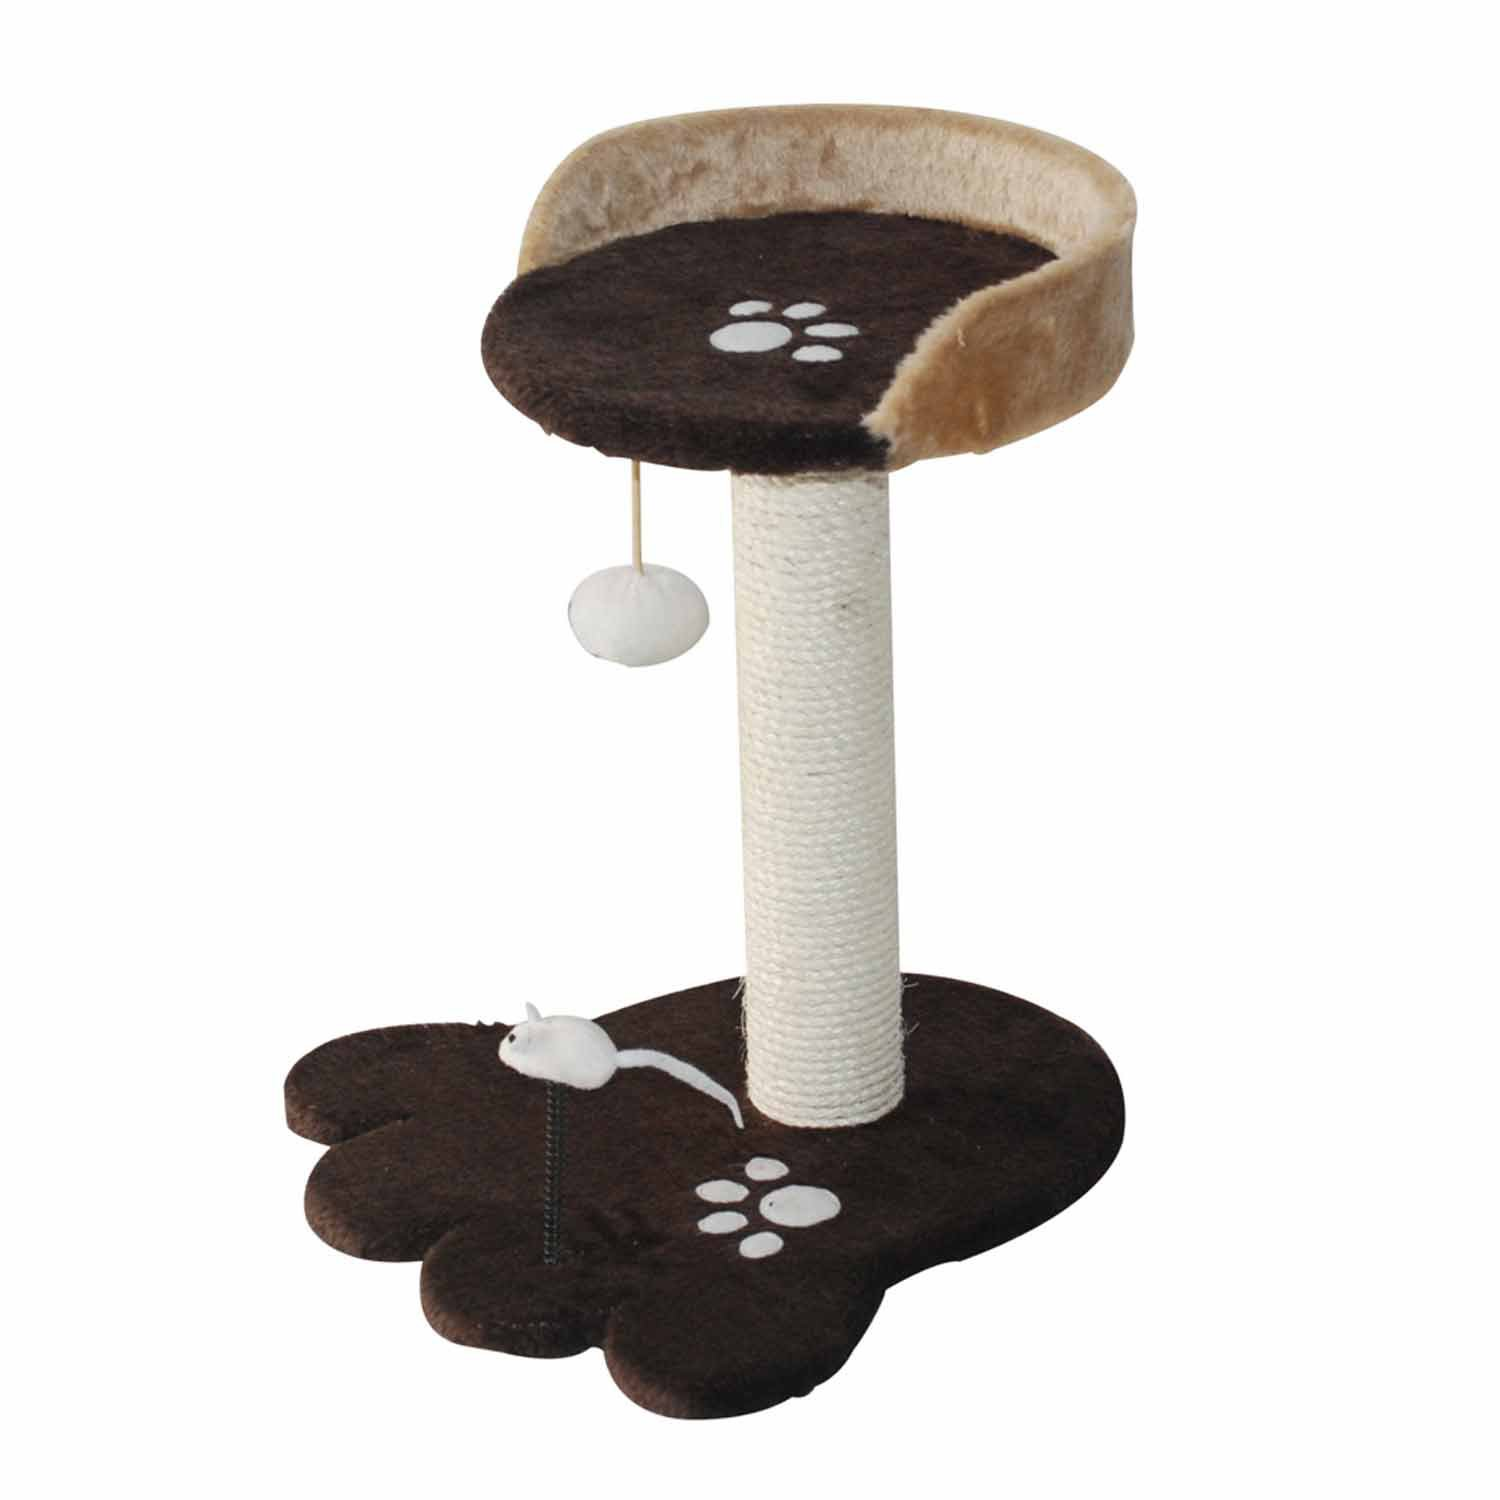 Alphapooch The Purrch Cat Furniture